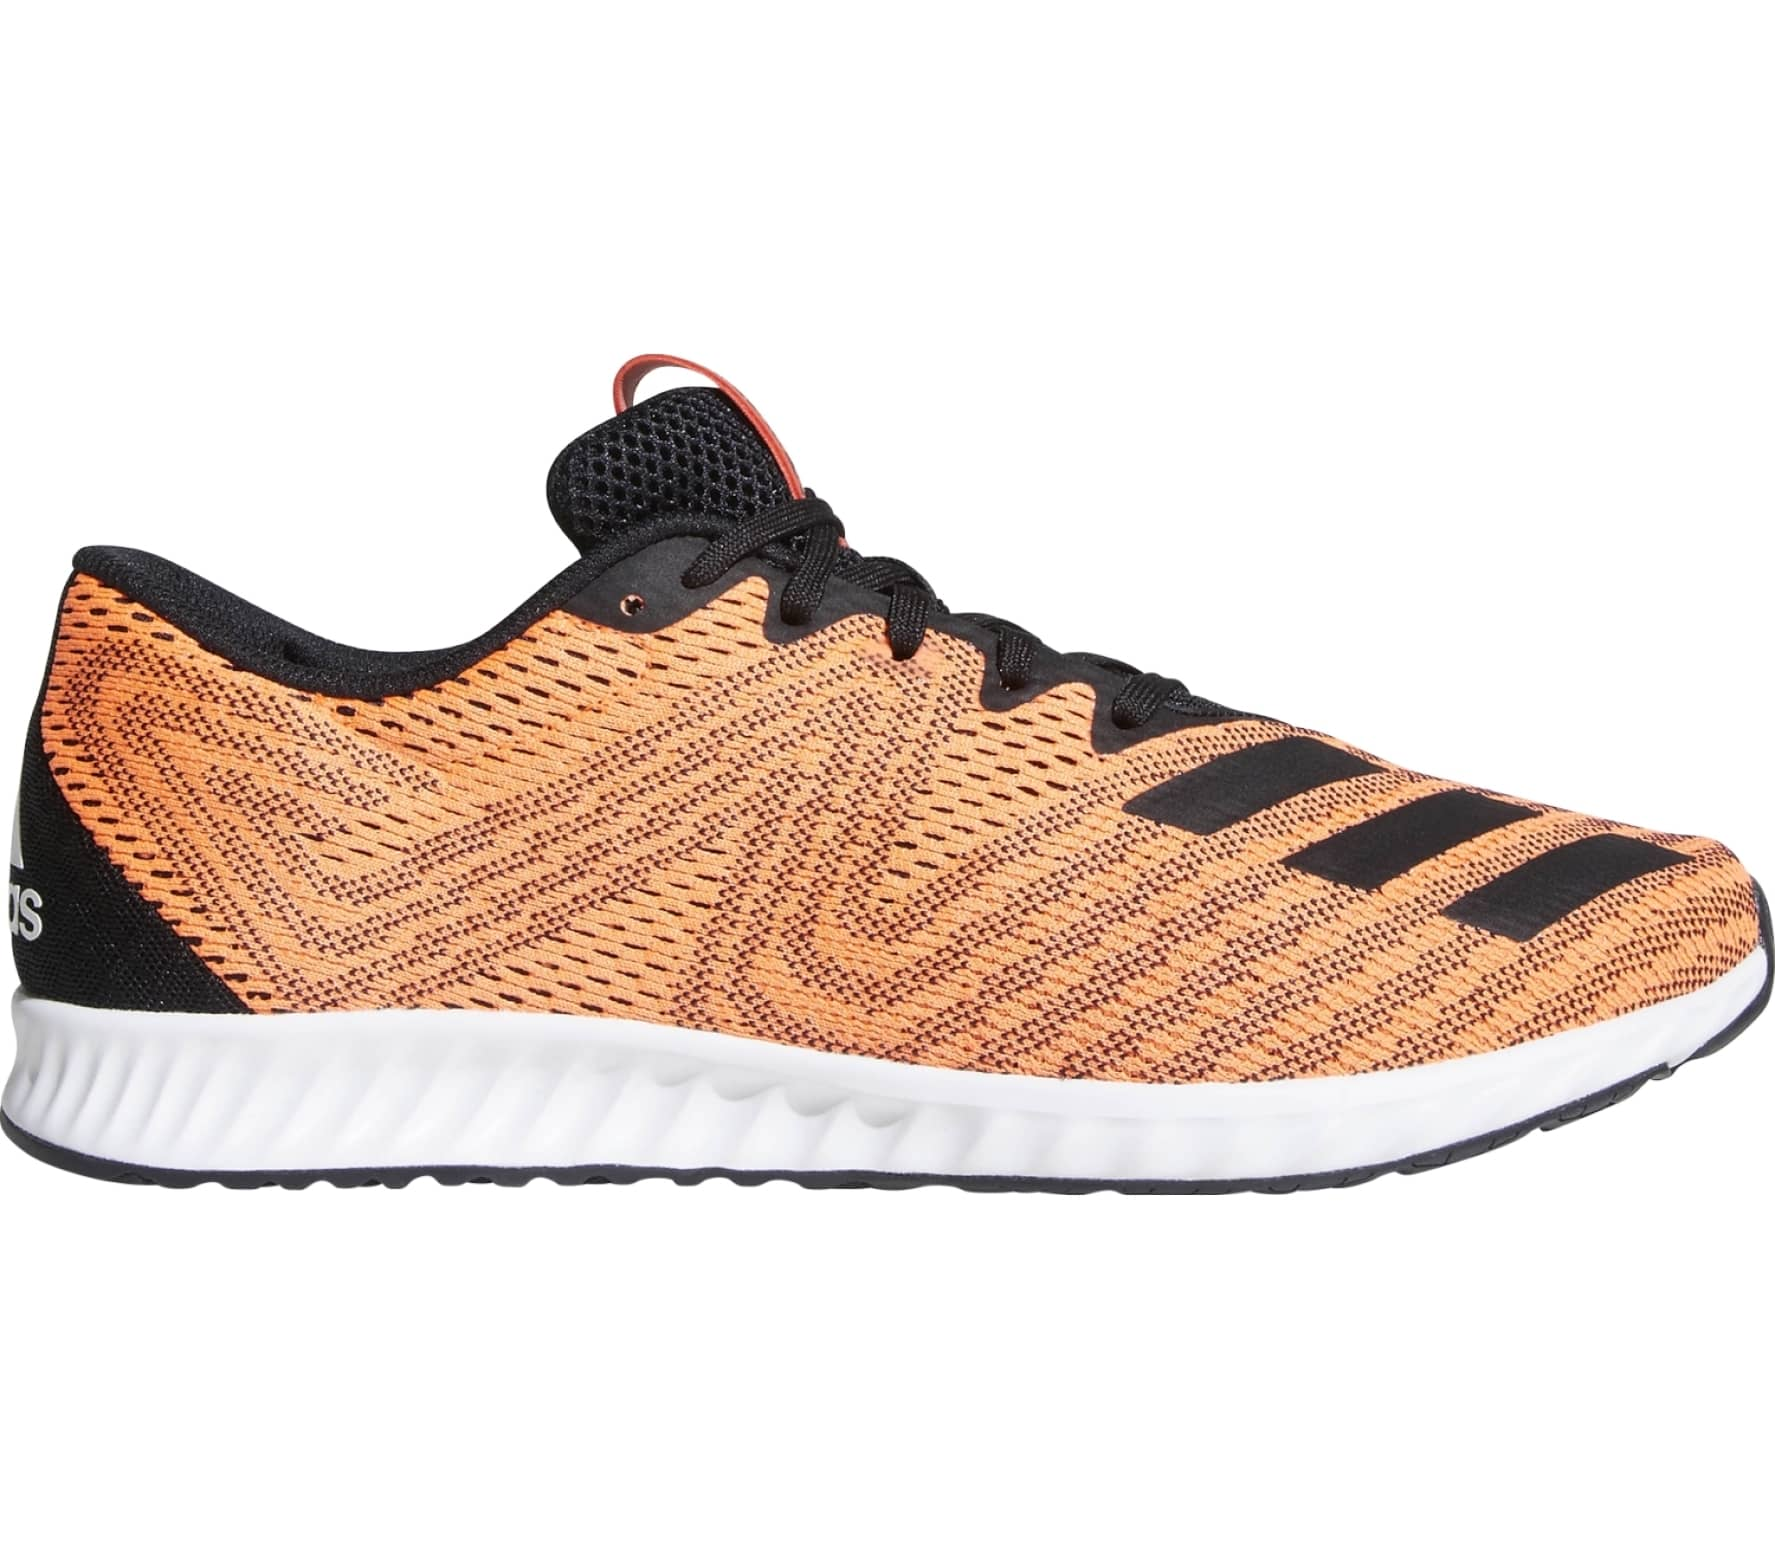 huge selection of 415d4 35cab Adidas - Aerobounce Pr men s running shoes (orange)